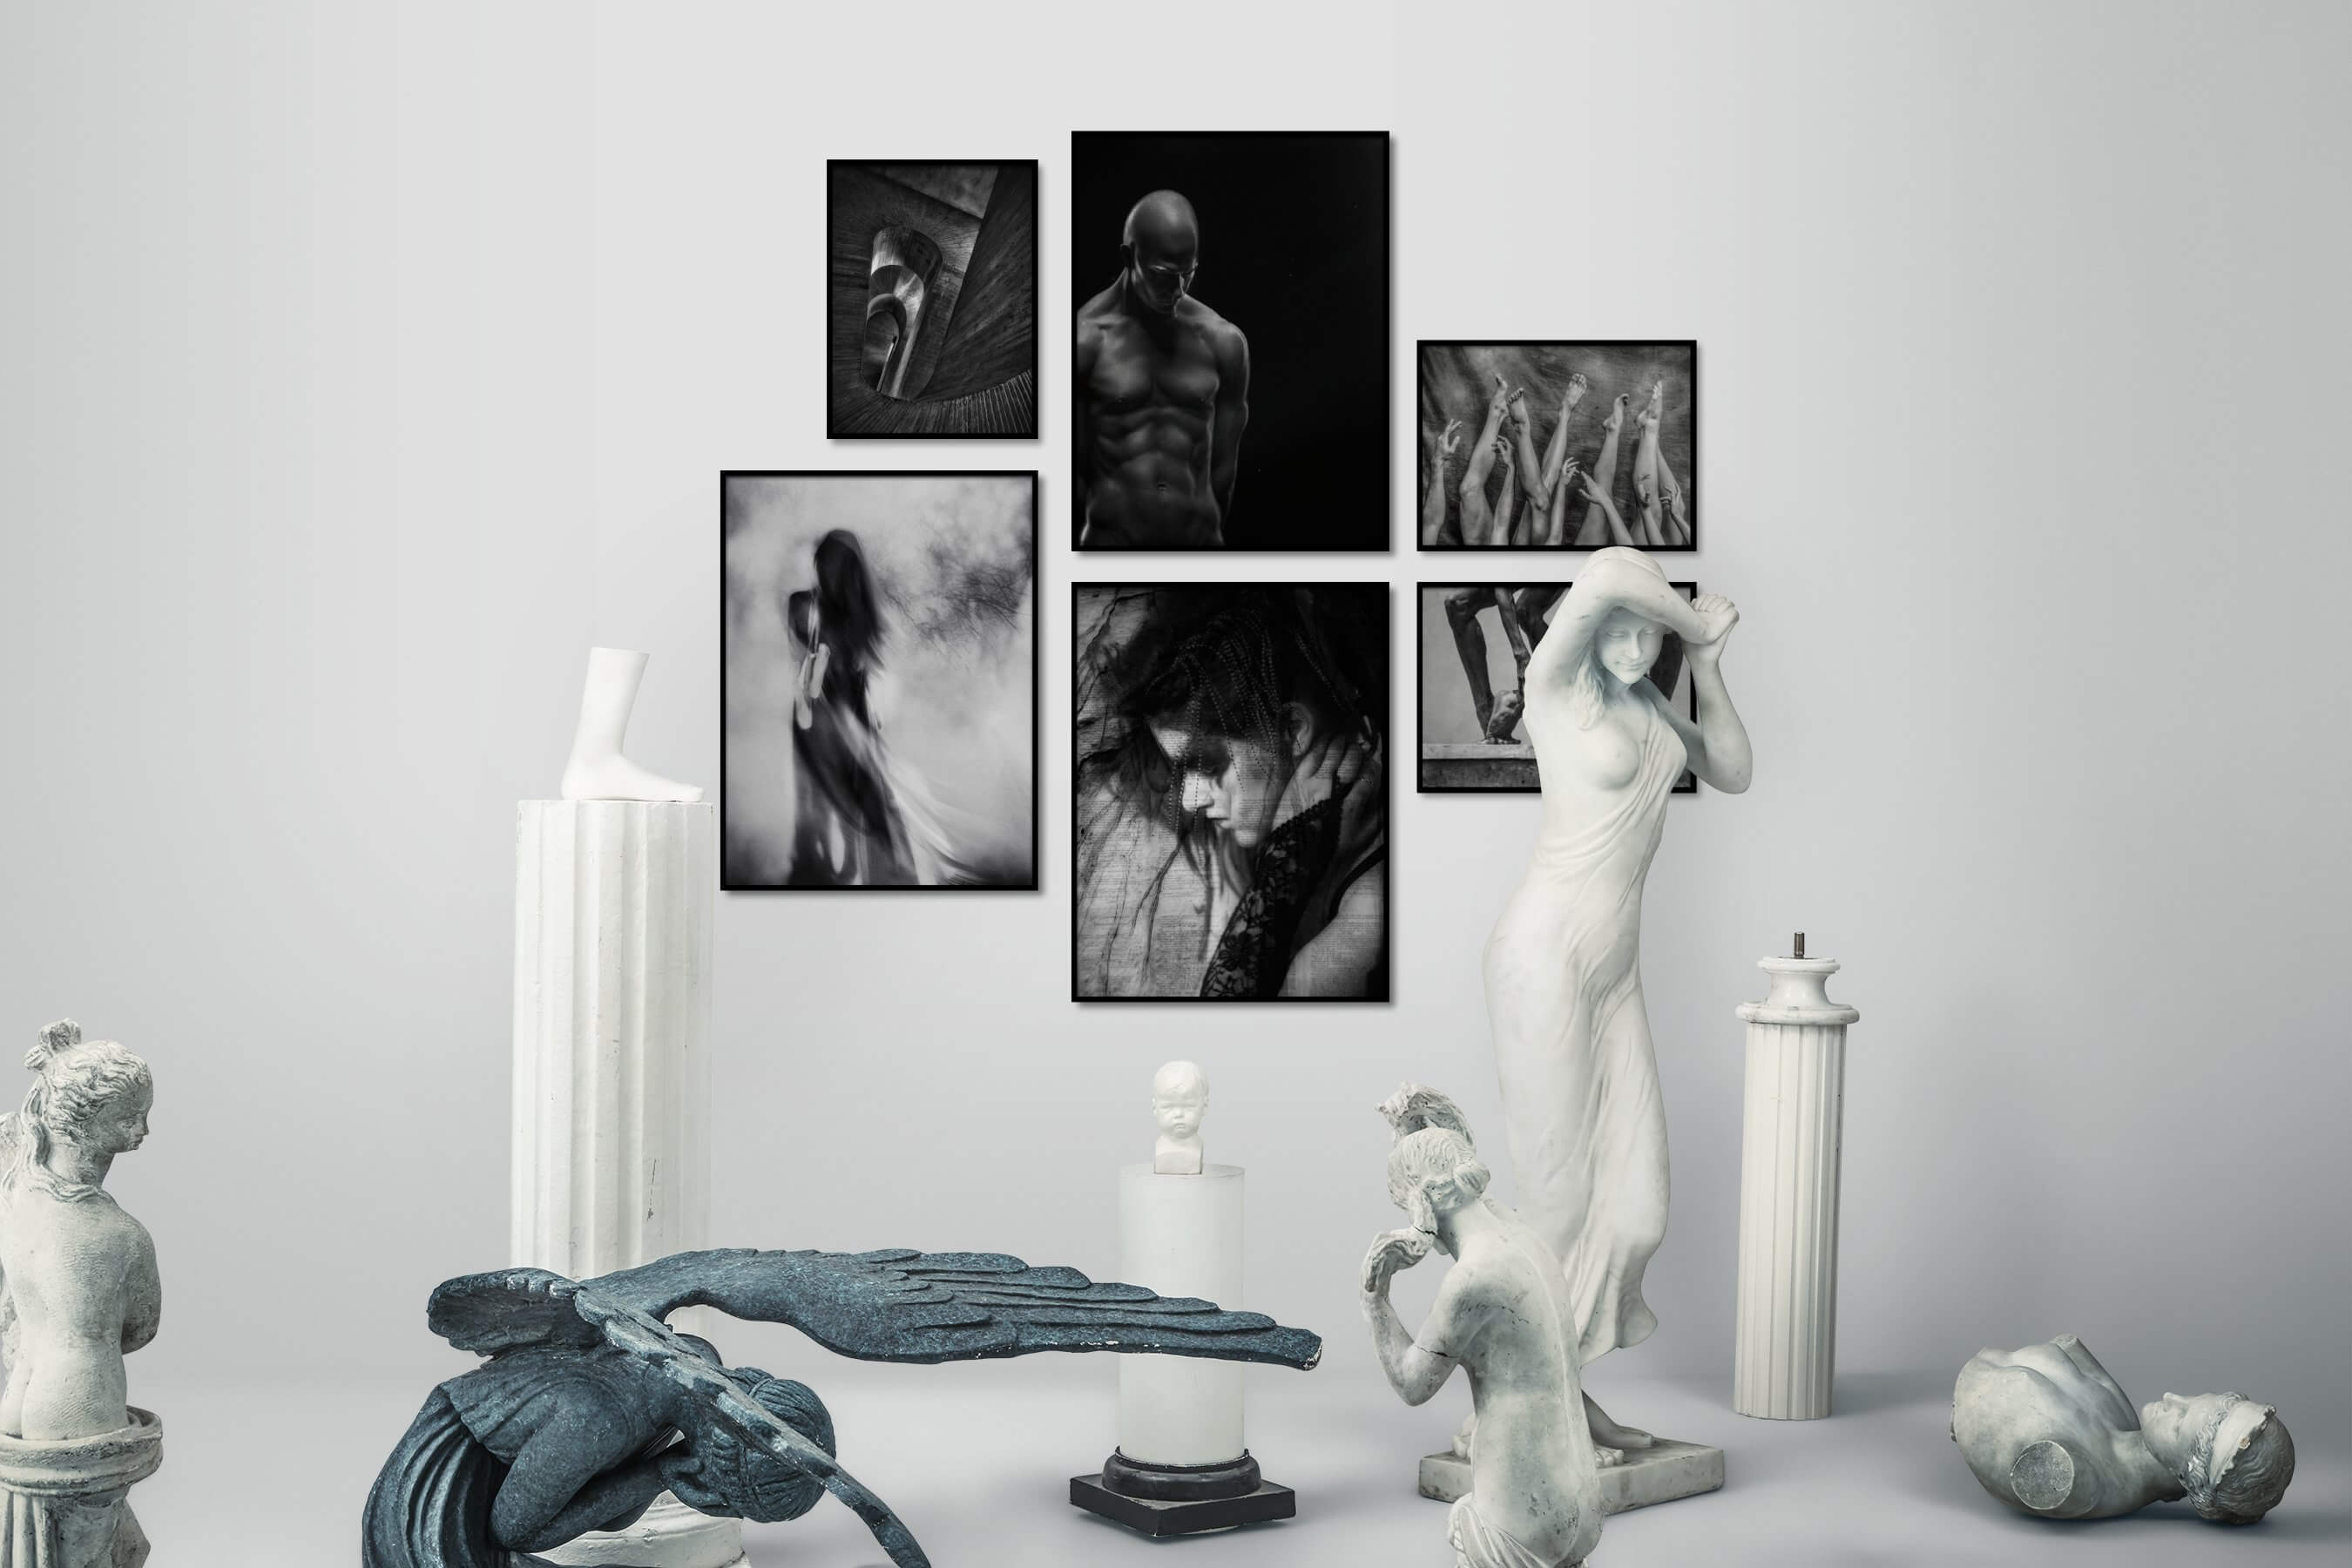 Gallery wall idea with six framed pictures arranged on a wall depicting Black & White, For the Moderate, Fashion & Beauty, Dark Tones, For the Minimalist, and Artsy